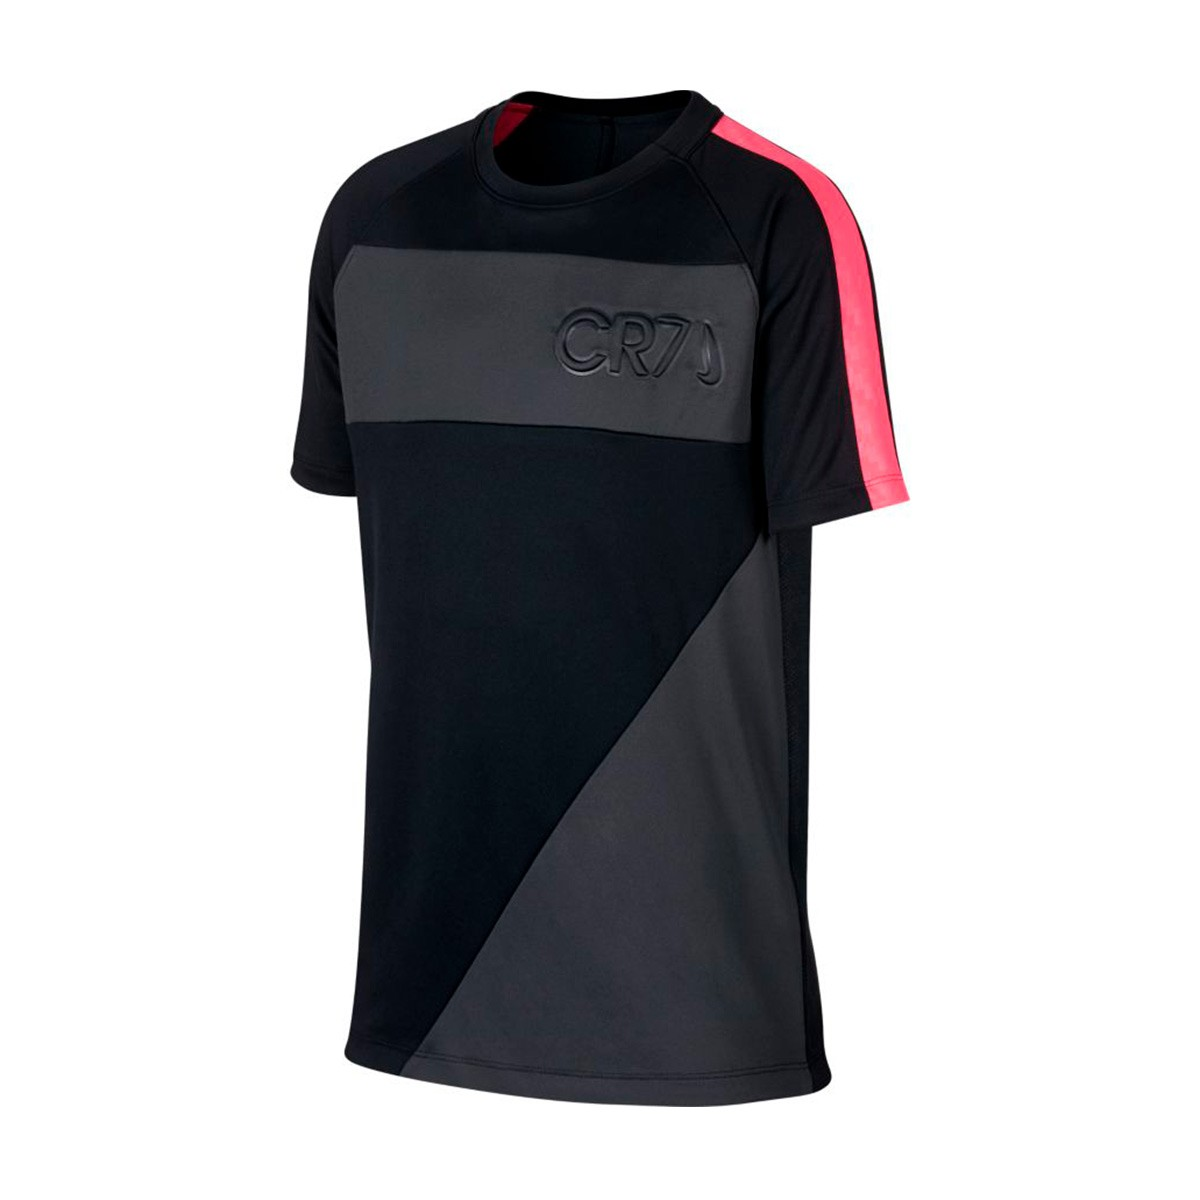 timeless design 345df 5486a Camiseta Dry CR7 Niño Black-Anthracite-Hot punch